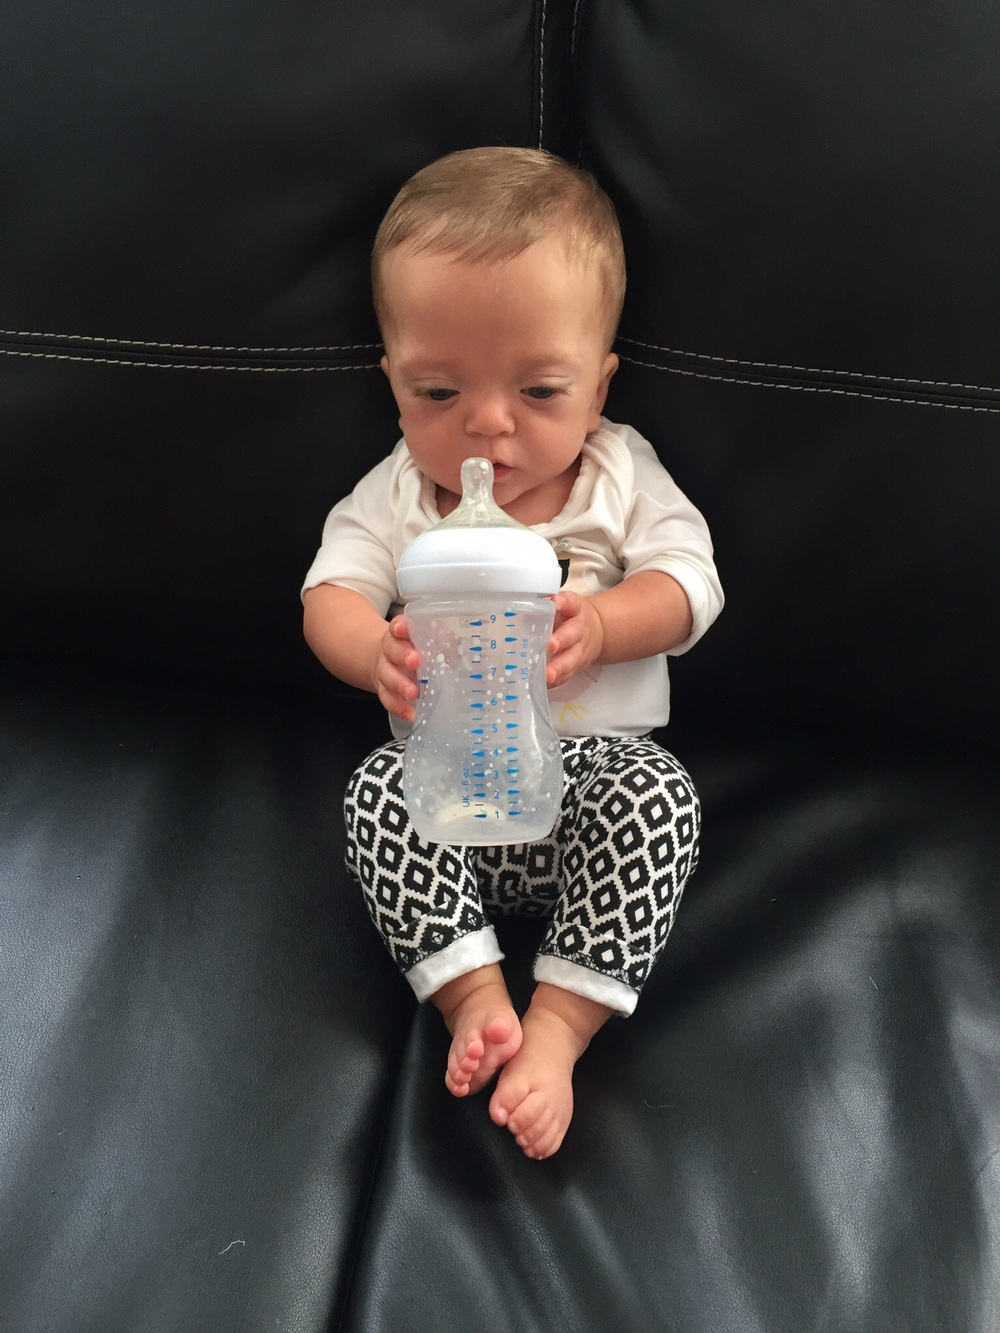 Eating from a big bottle, And starting to learn to hold it… CHECK!